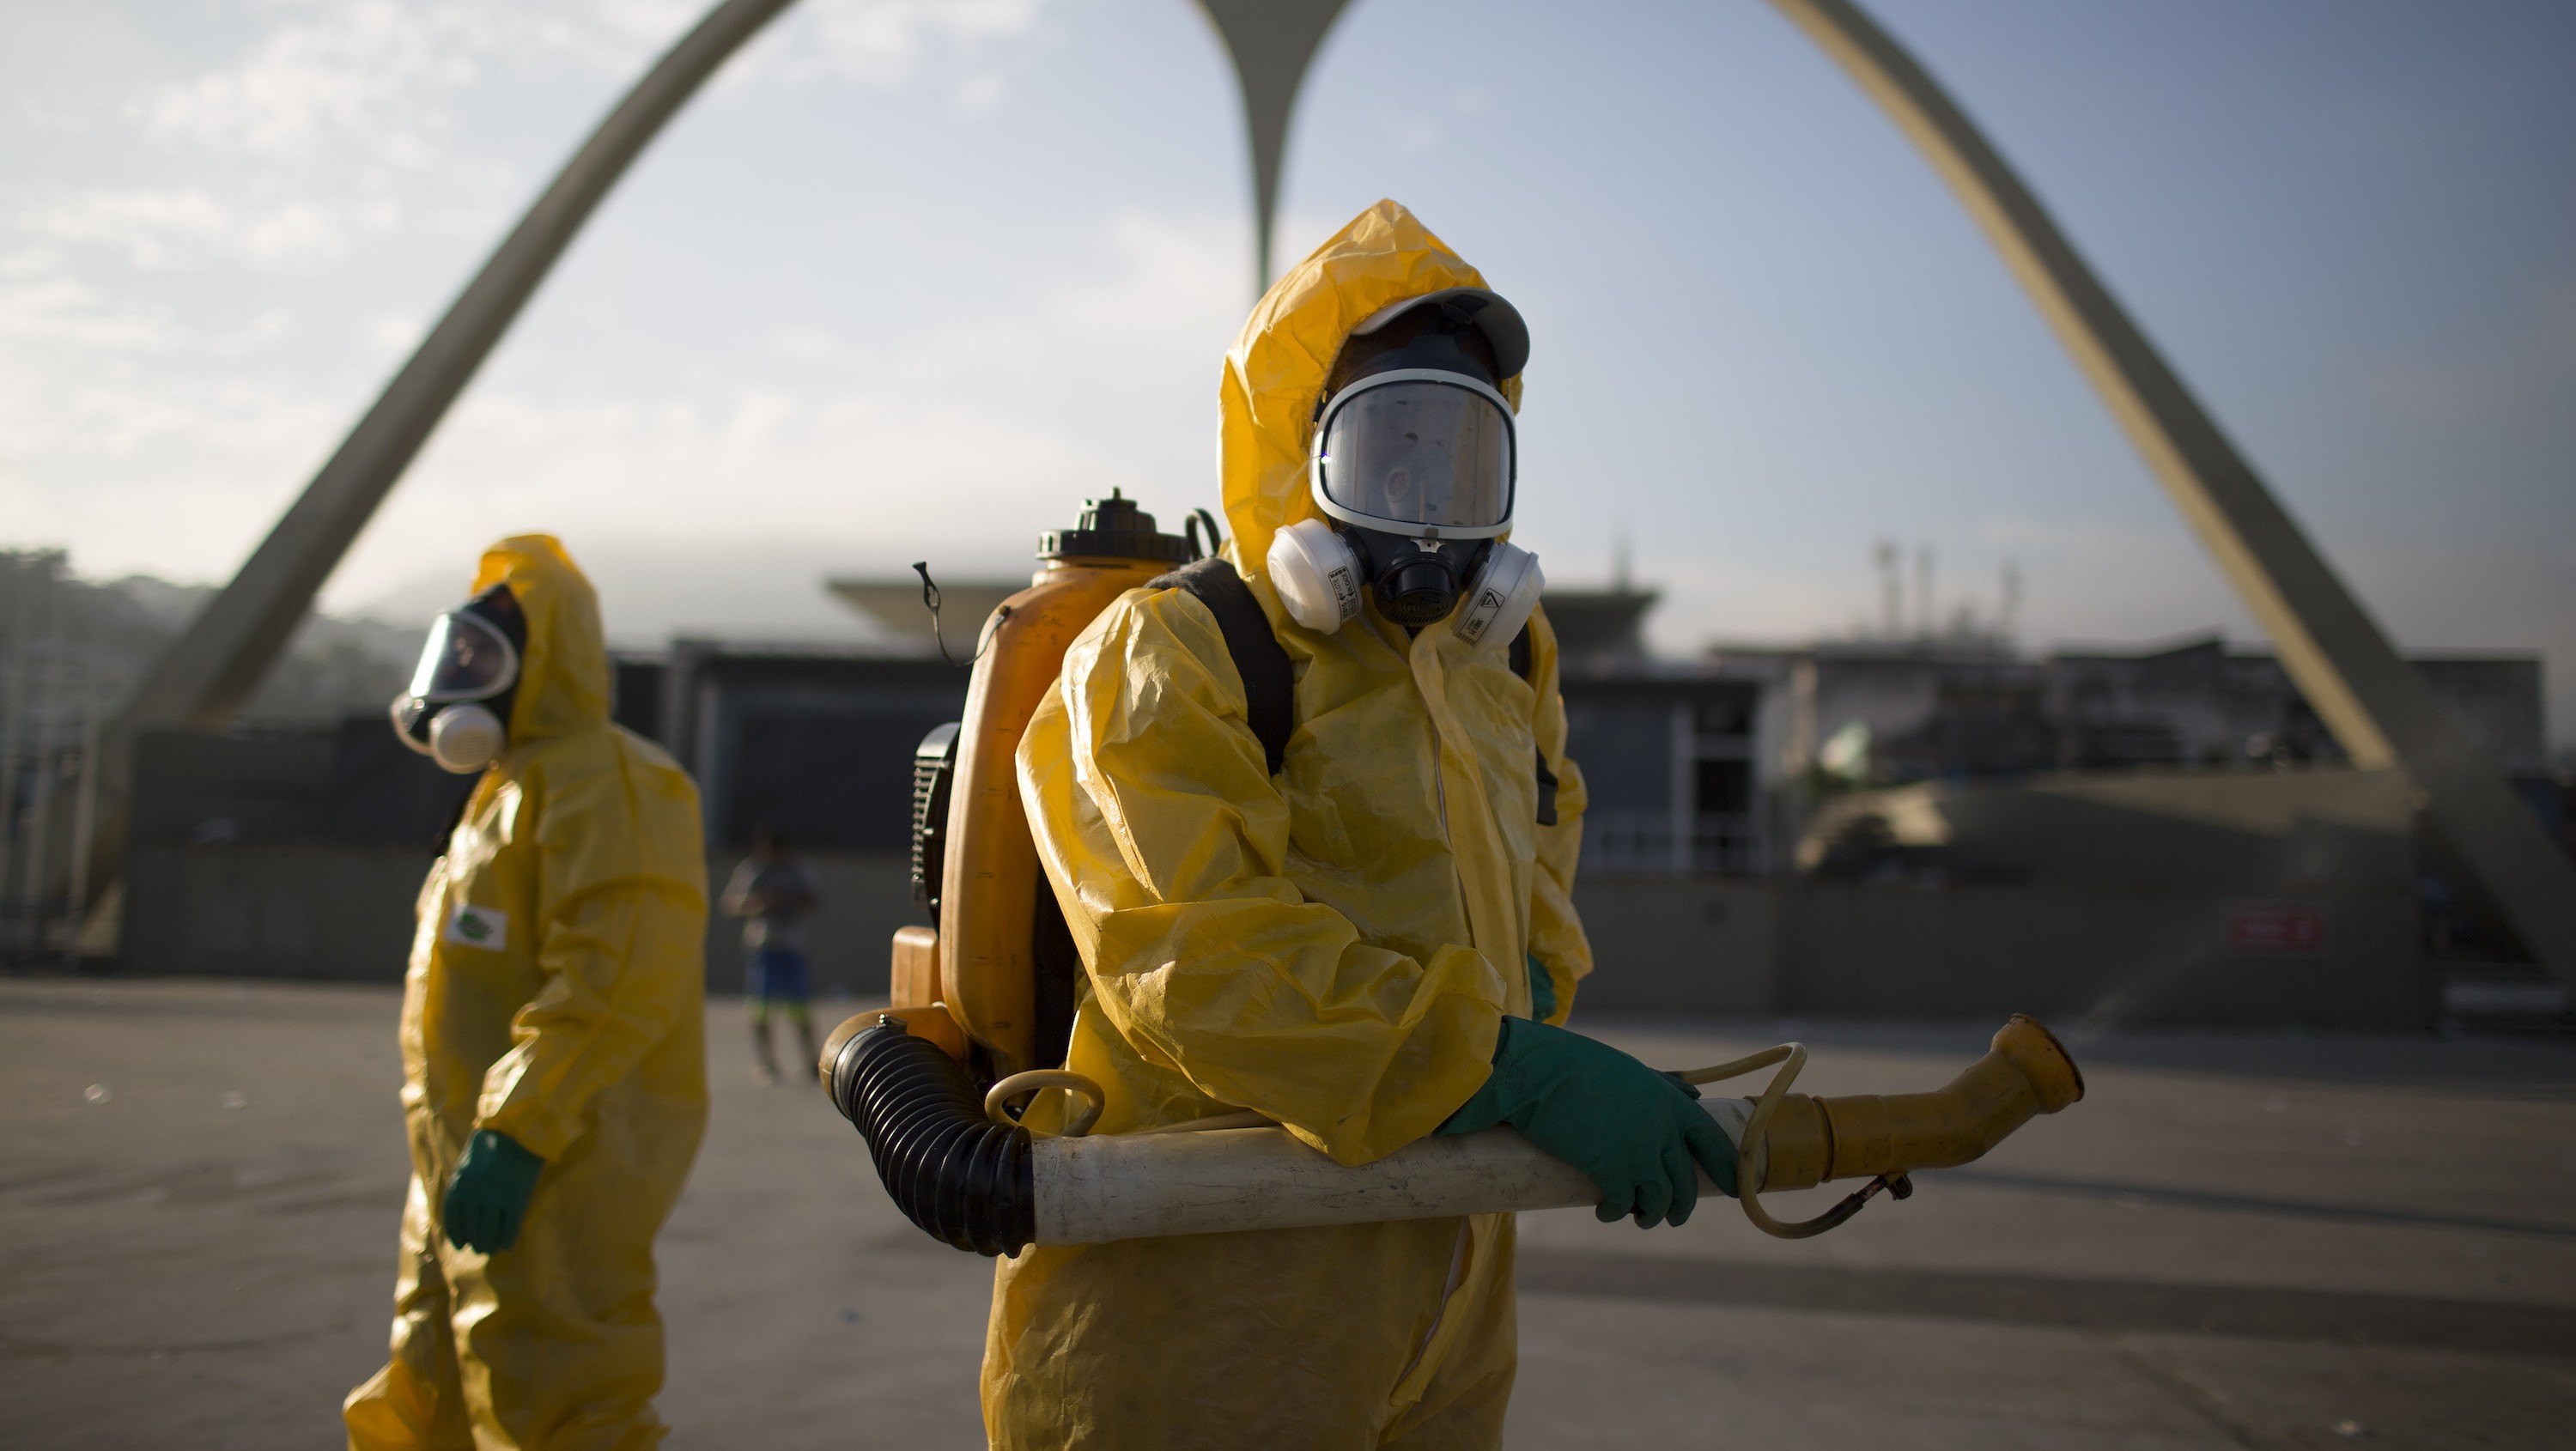 The Olympics Won't Be Cancelled Over Zika, So Keep It in Your Pants and Use Bug Spray